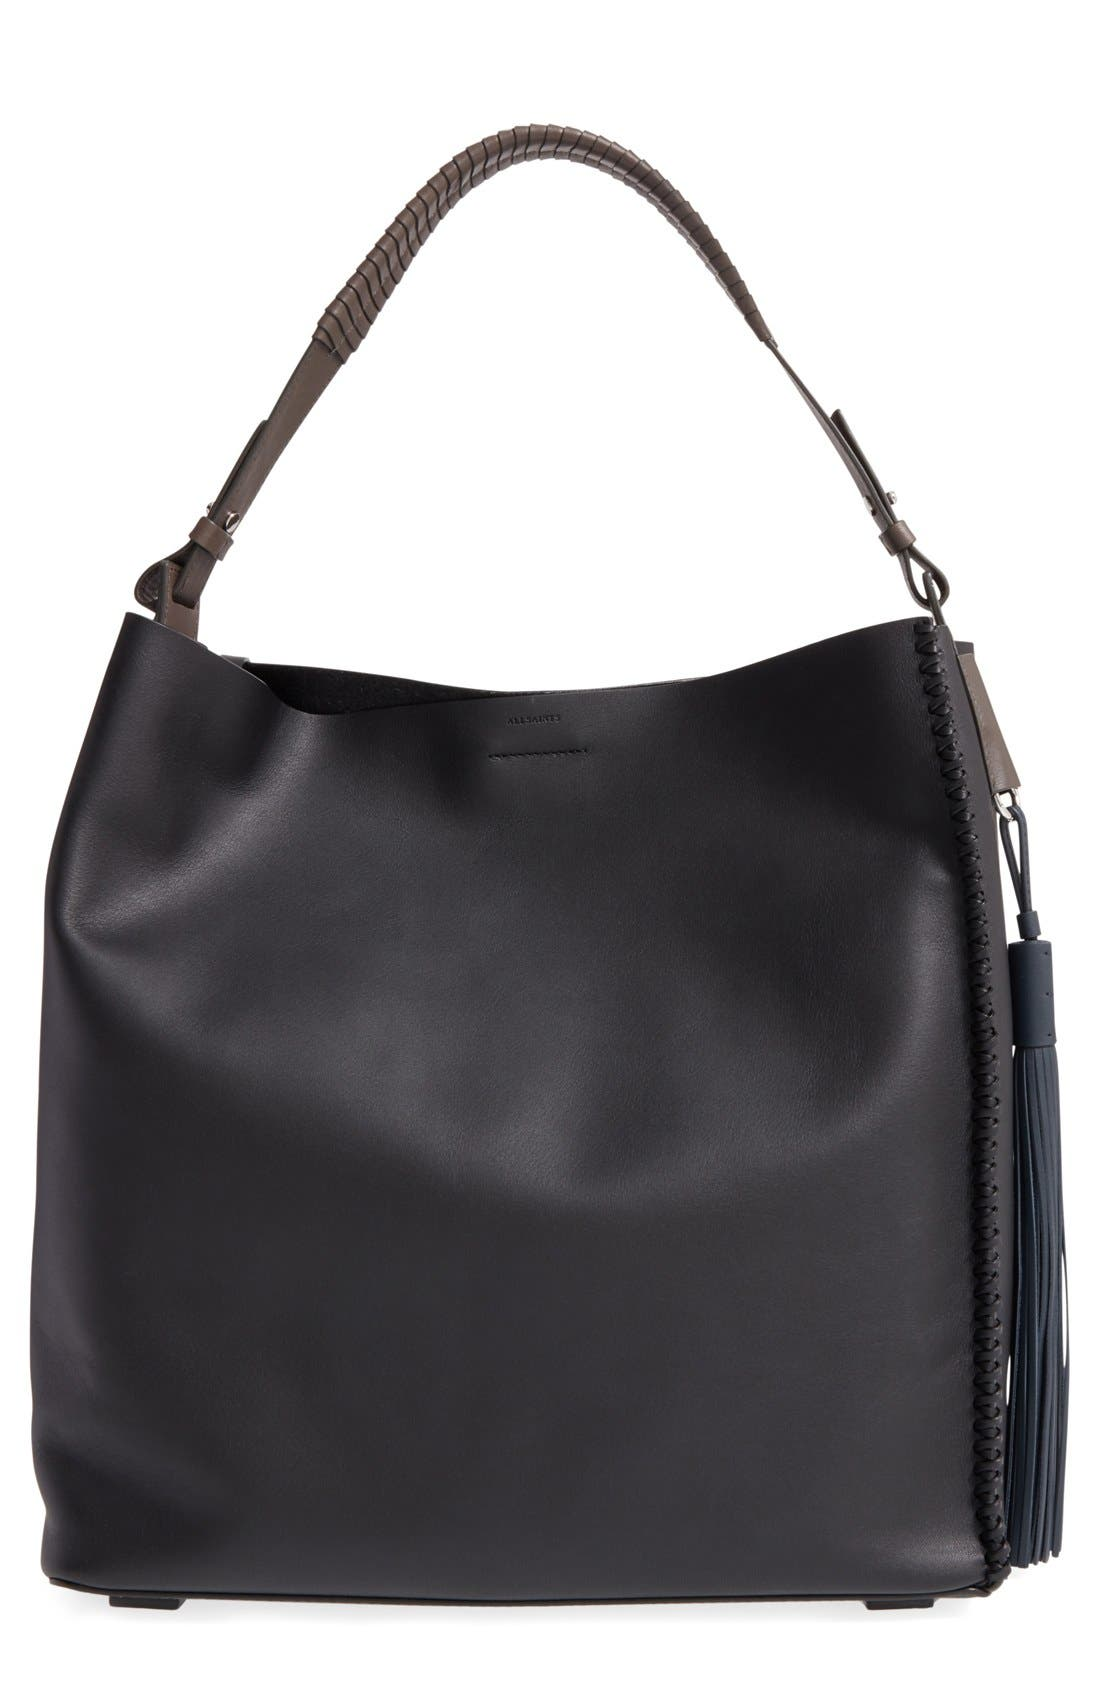 ALLSAINTS 'Pearl' Leather Hobo